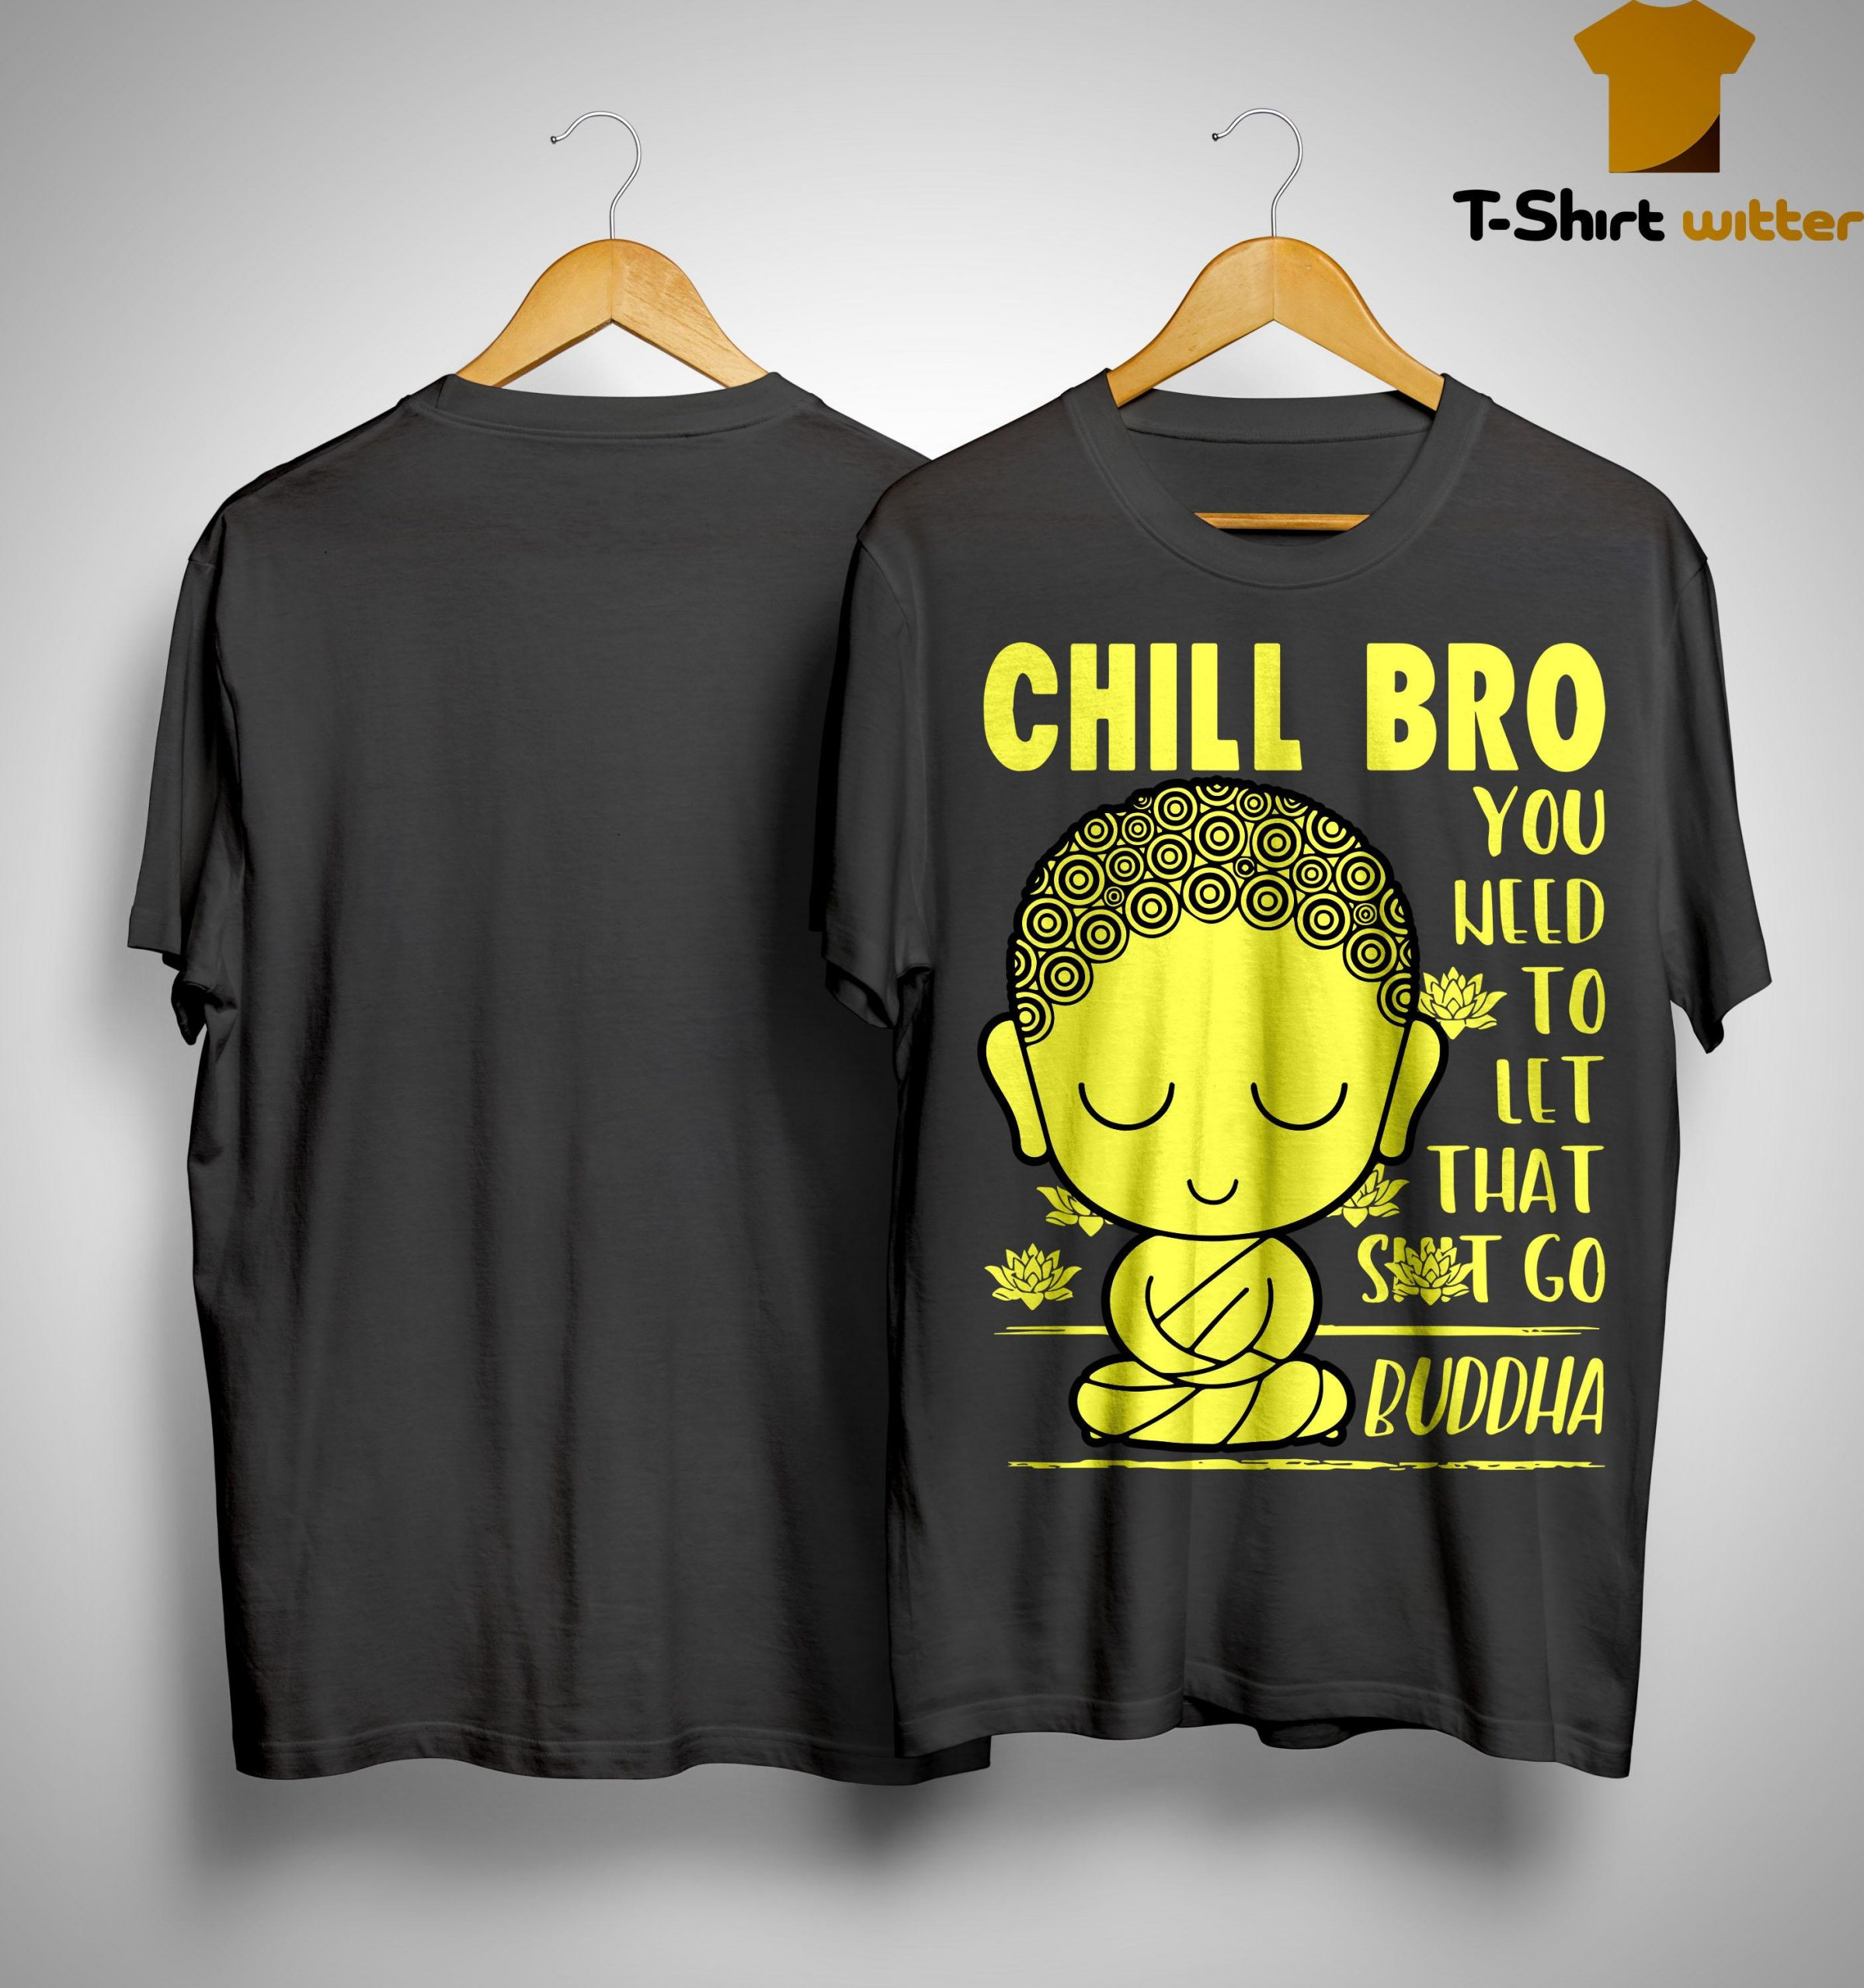 Chill Bro You Need To Let That Shit Go Buddha Shirt